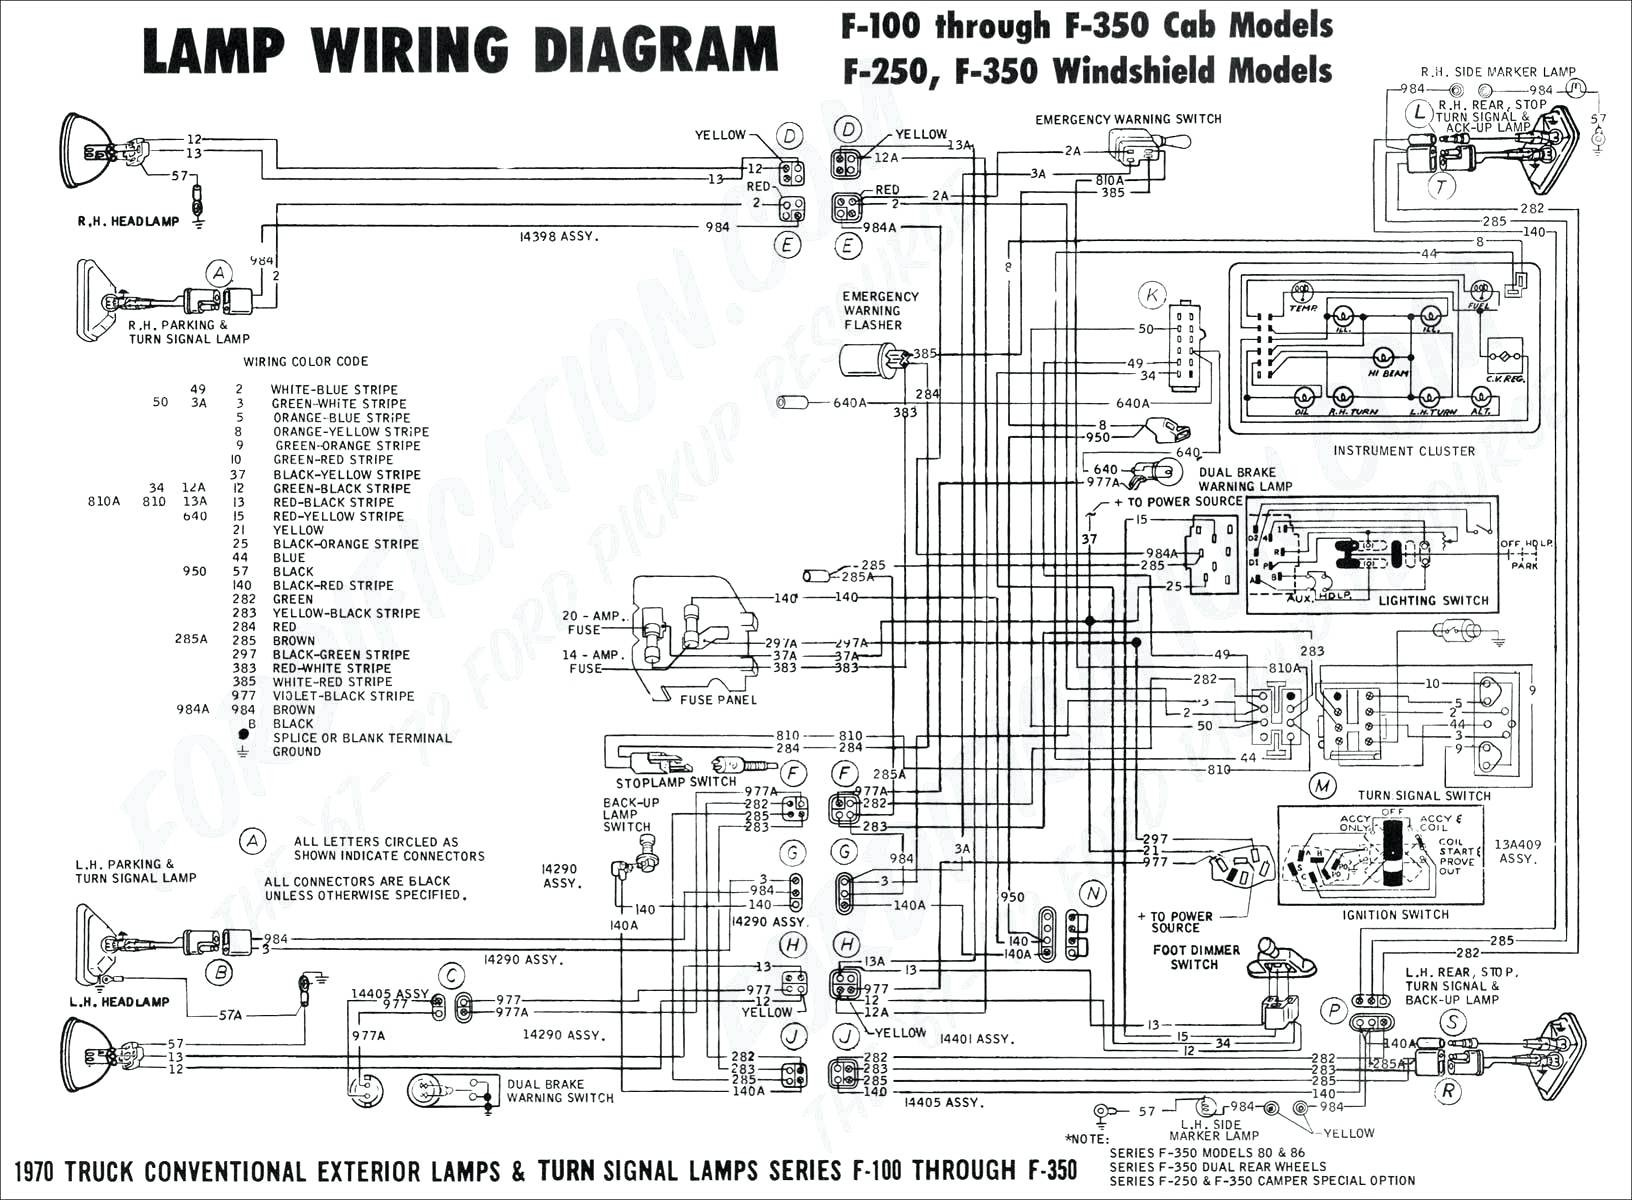 Wiring Diagram for Kmise Pickups to Switch ✦diagram Based✦ 98 Dodge Ram 2500 Wiring Diagram Pleted Of Wiring Diagram for Kmise Pickups to Switch